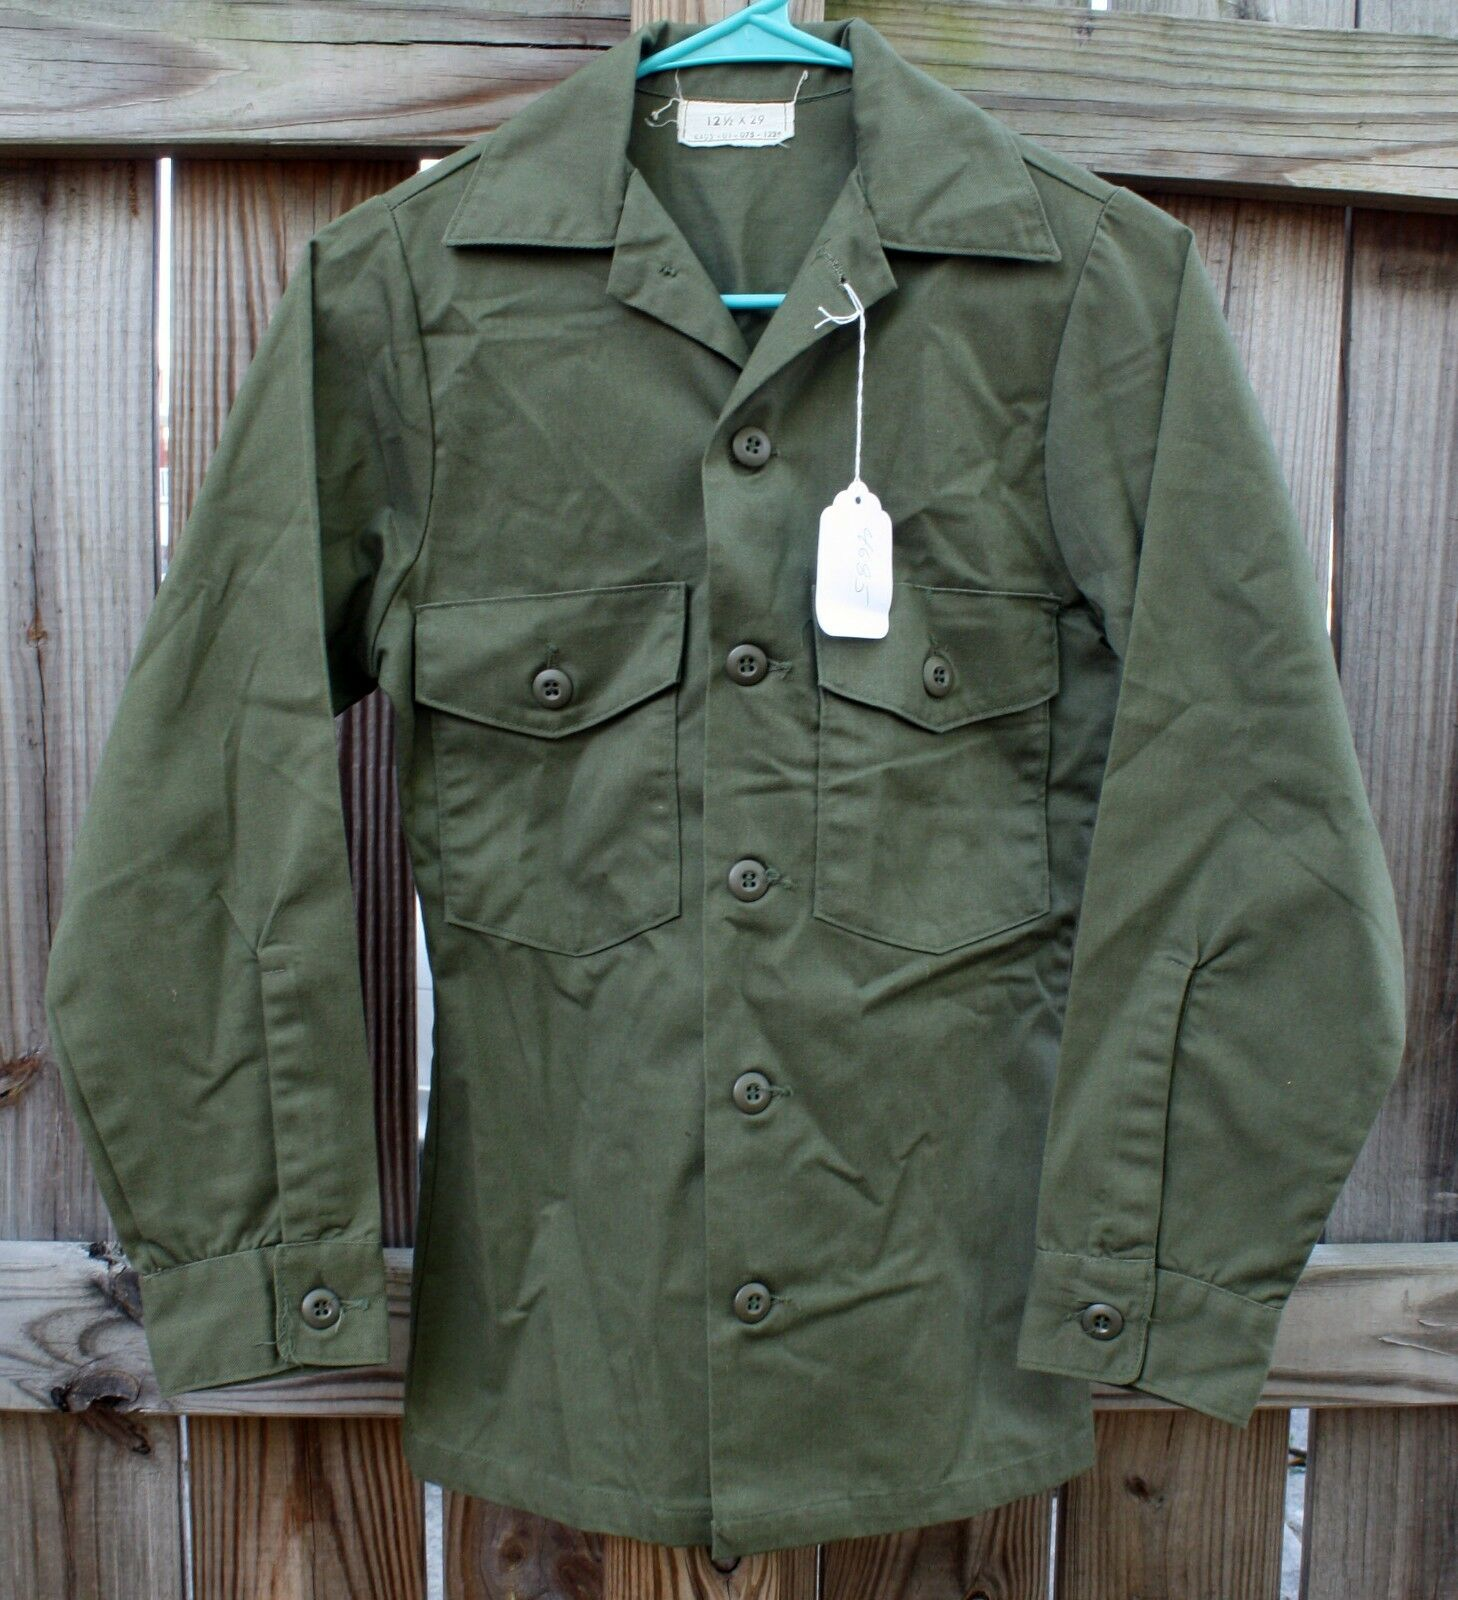 Vintage 1970's US Army Utility Shirt Size 12